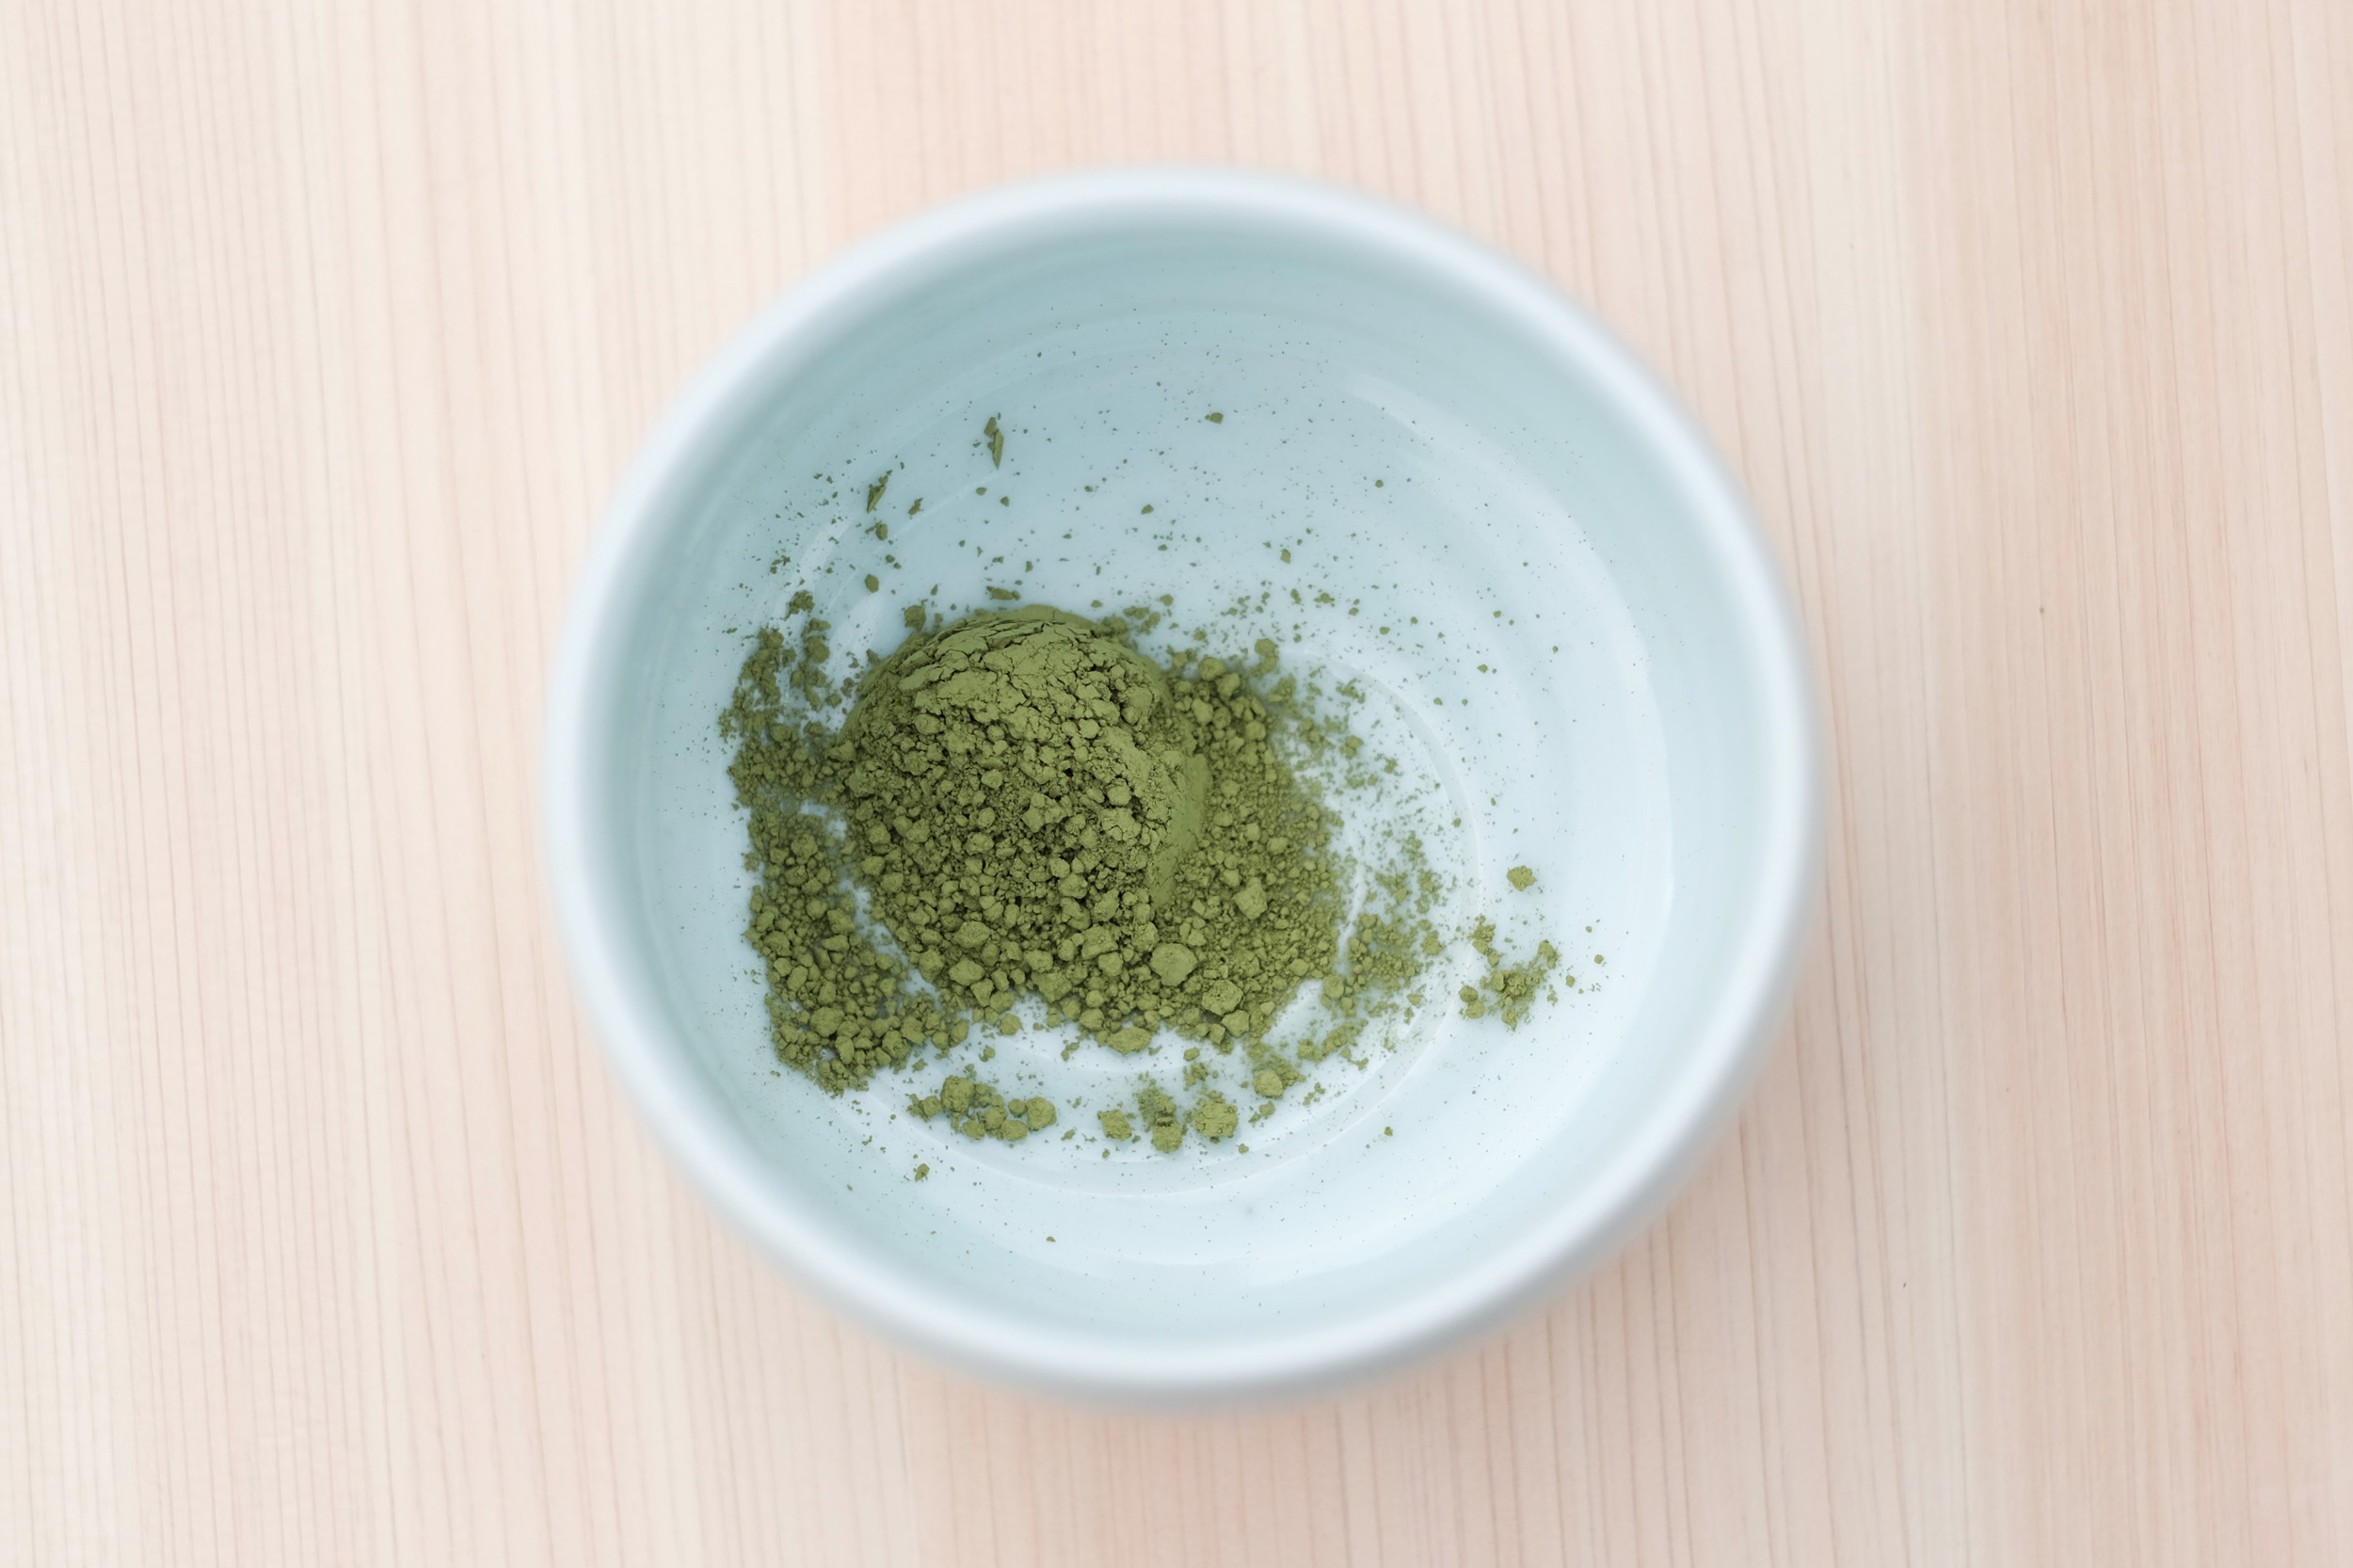 Place your teaspoon of matcha into the matcha bowl.